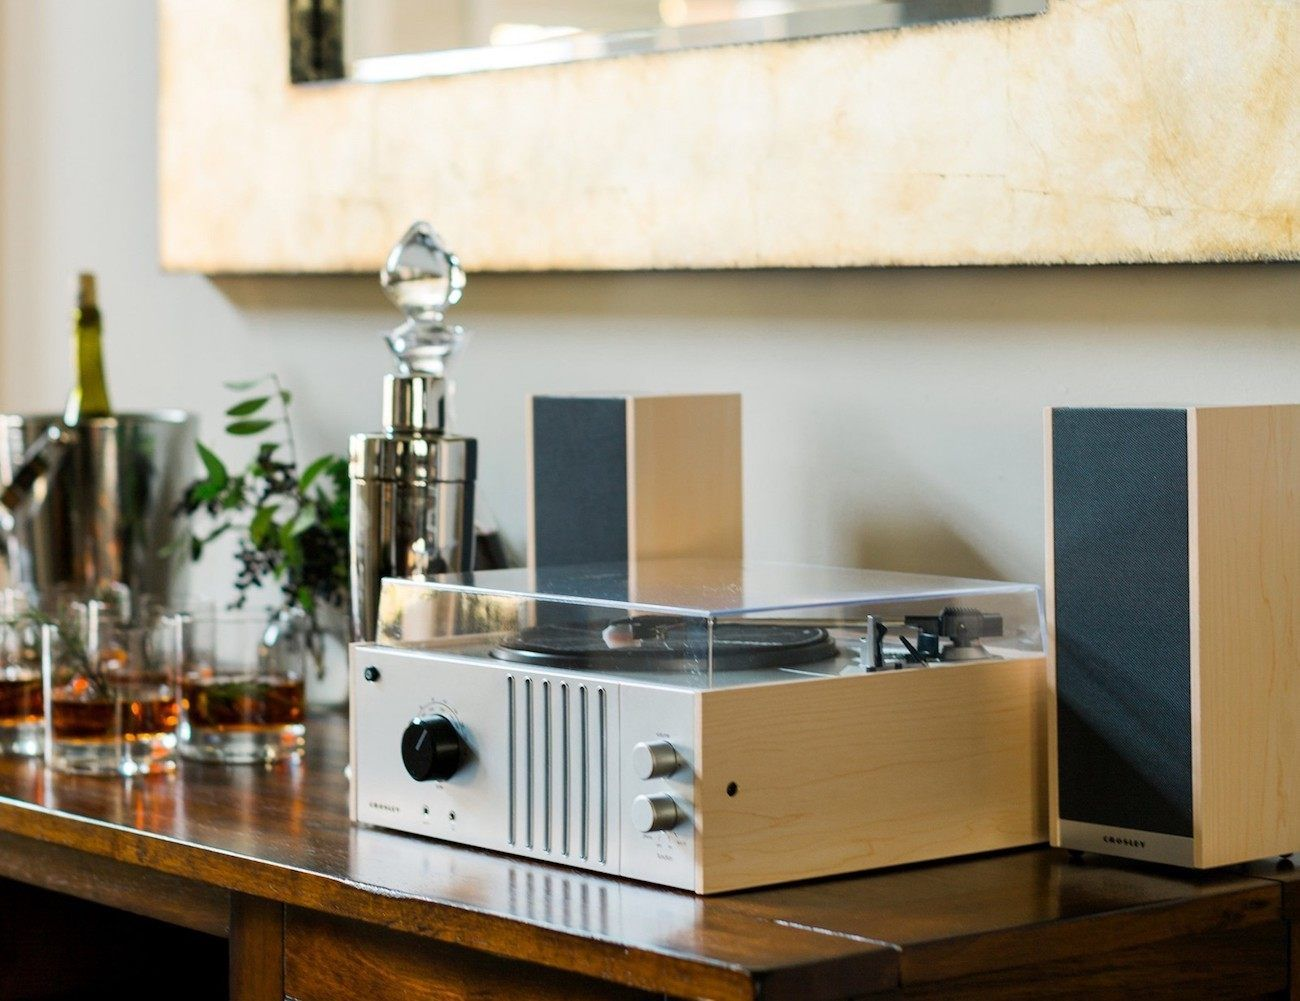 Charmant In Addition To This Vintage Aesthetic, The Turntable Shelf System Offers  Modern Connectivity For Your Music Collection.